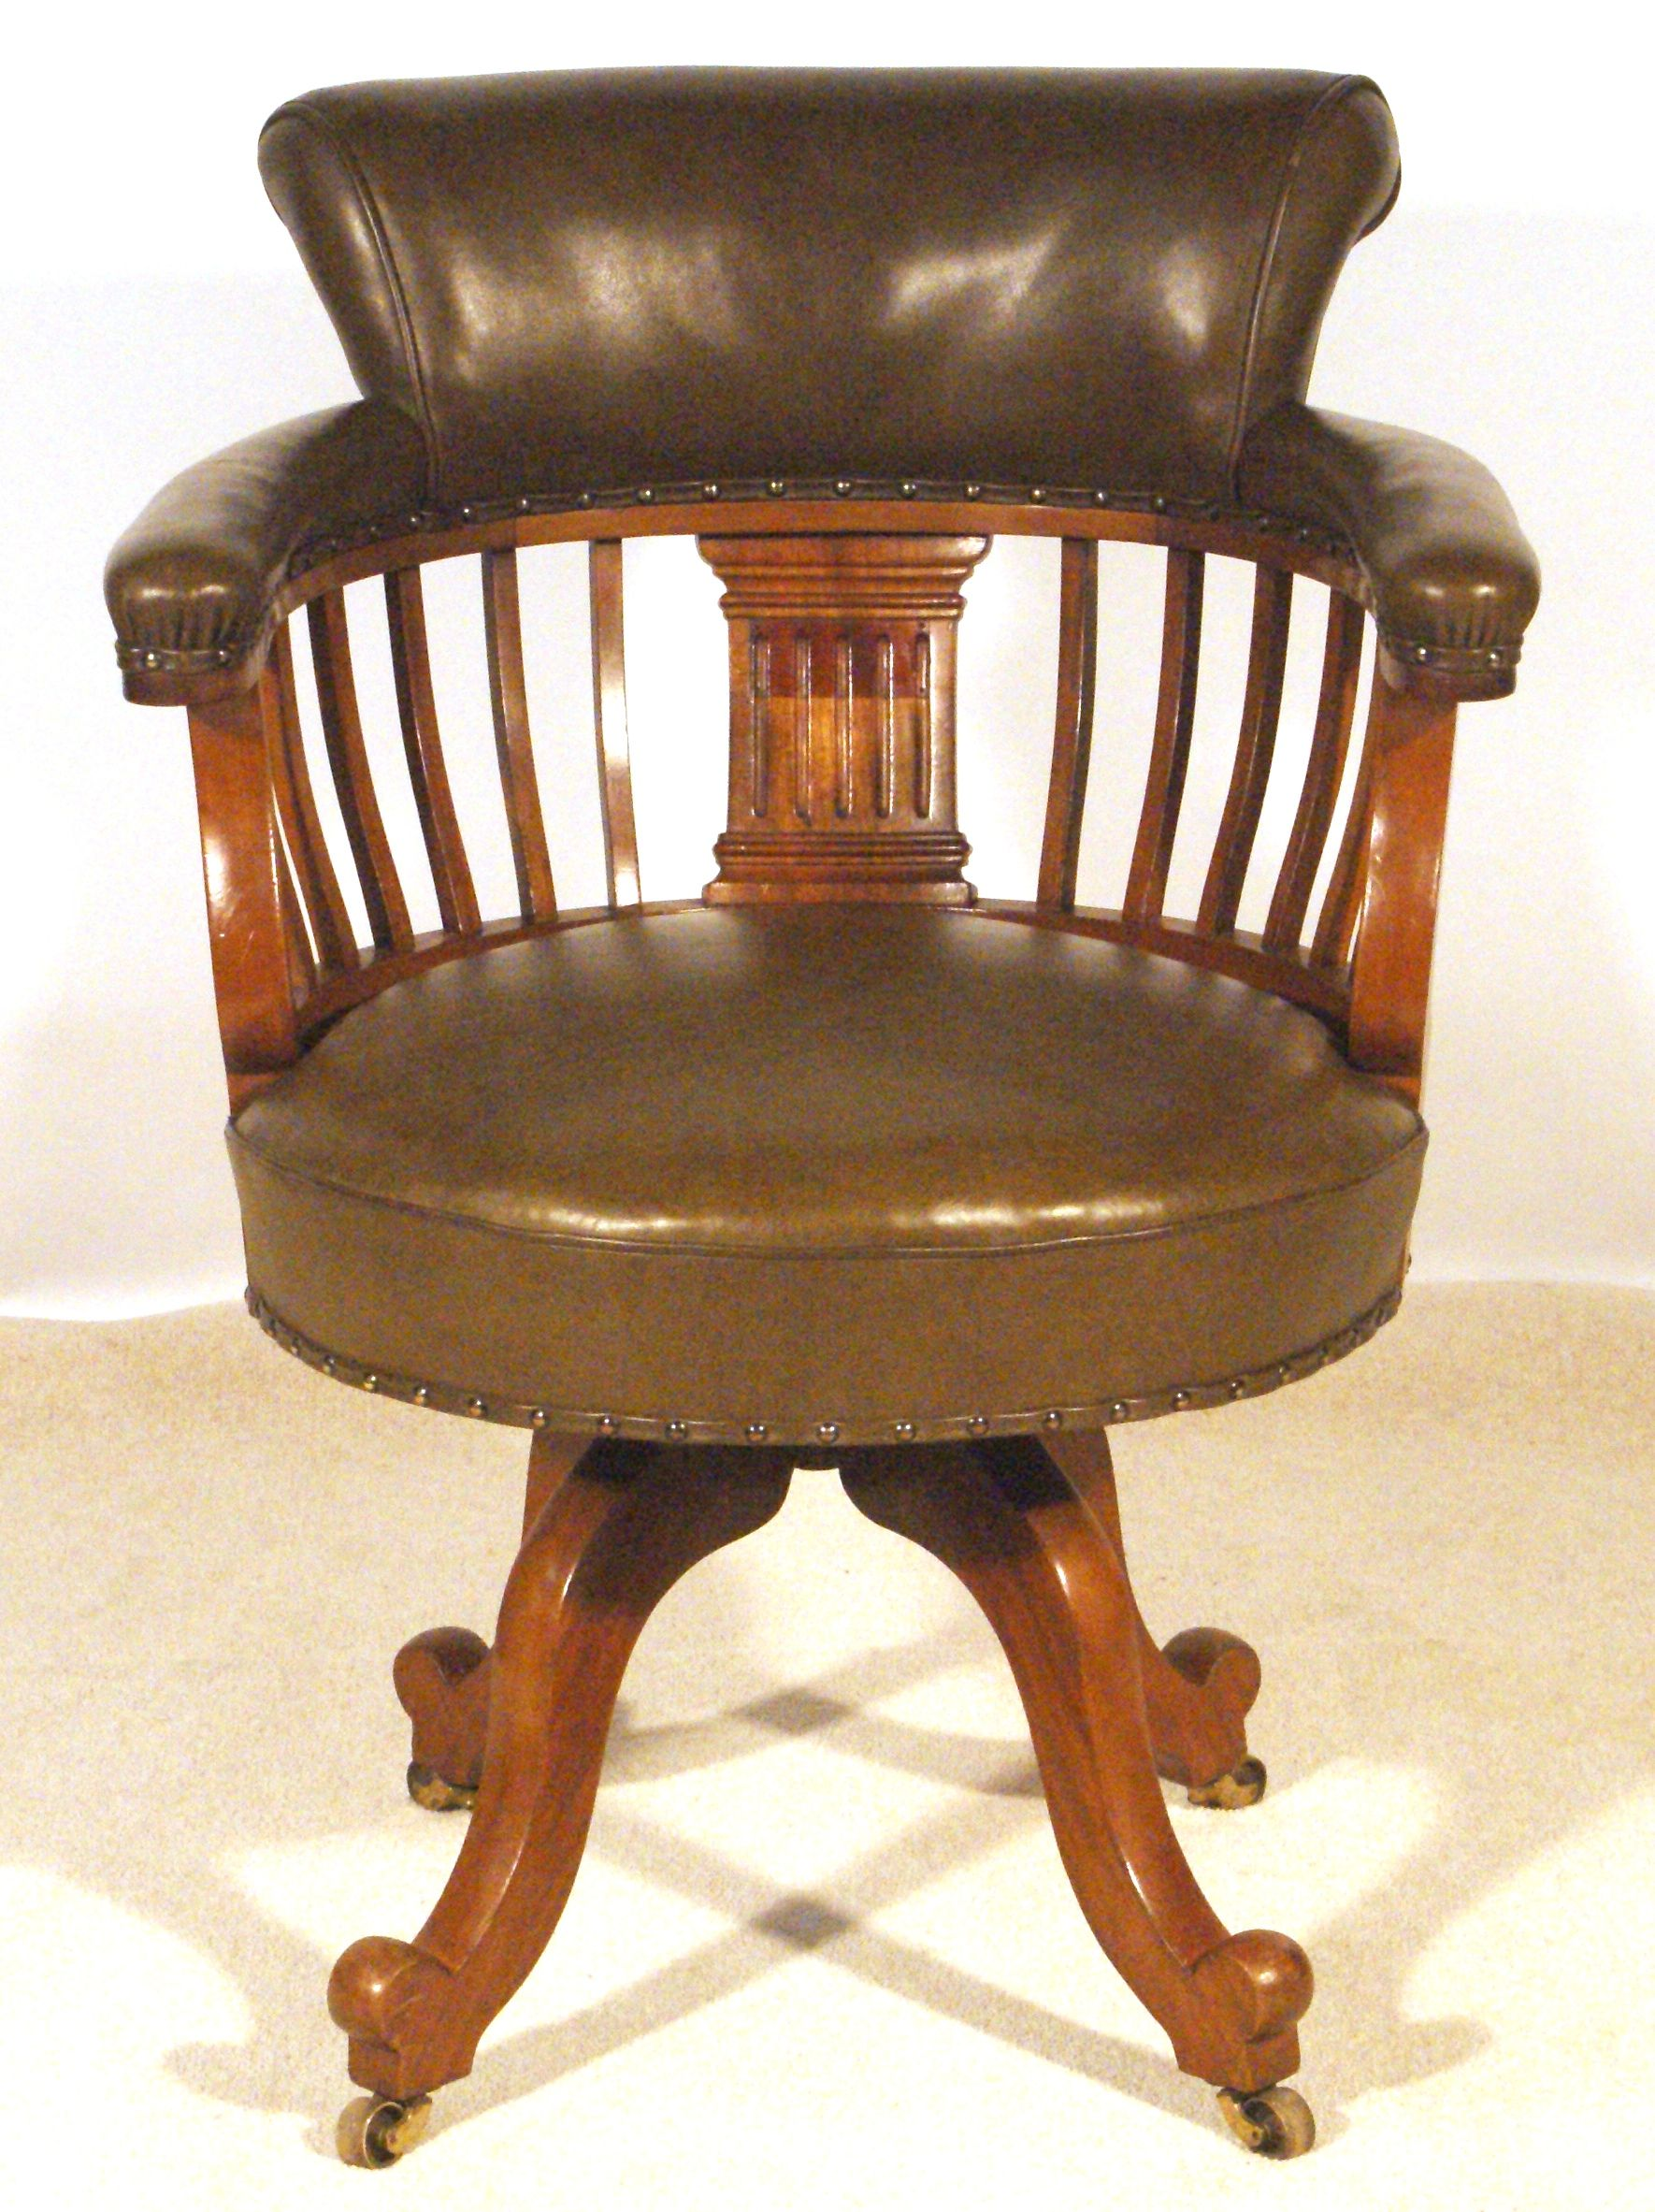 Victorian swivel desk chair well upholstered in new green hide